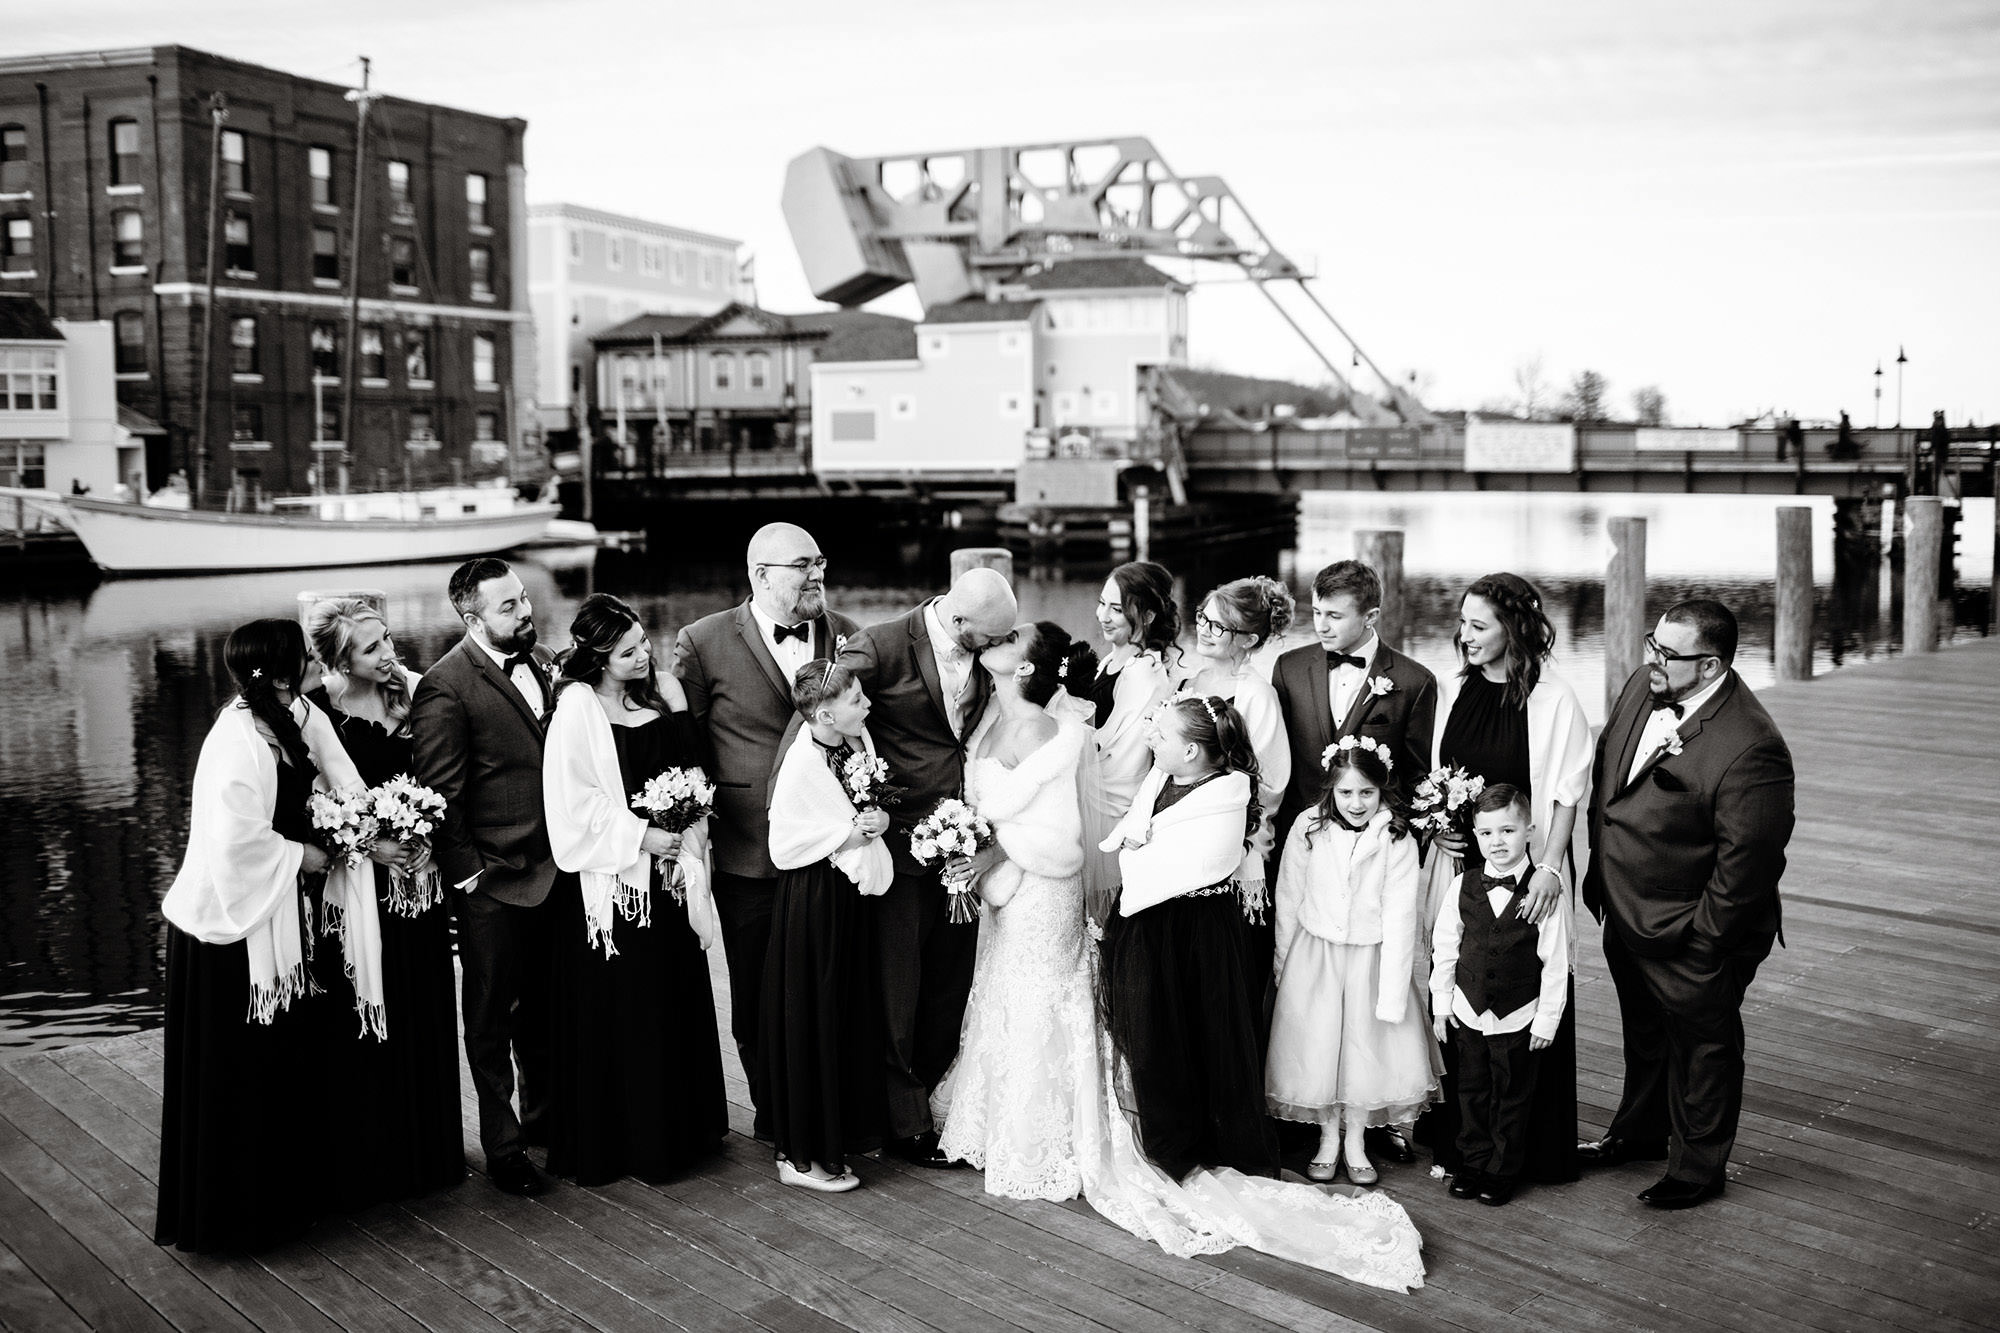 The wedding party stands on the dock as the couple kisses in Downtown Mystic, CT.